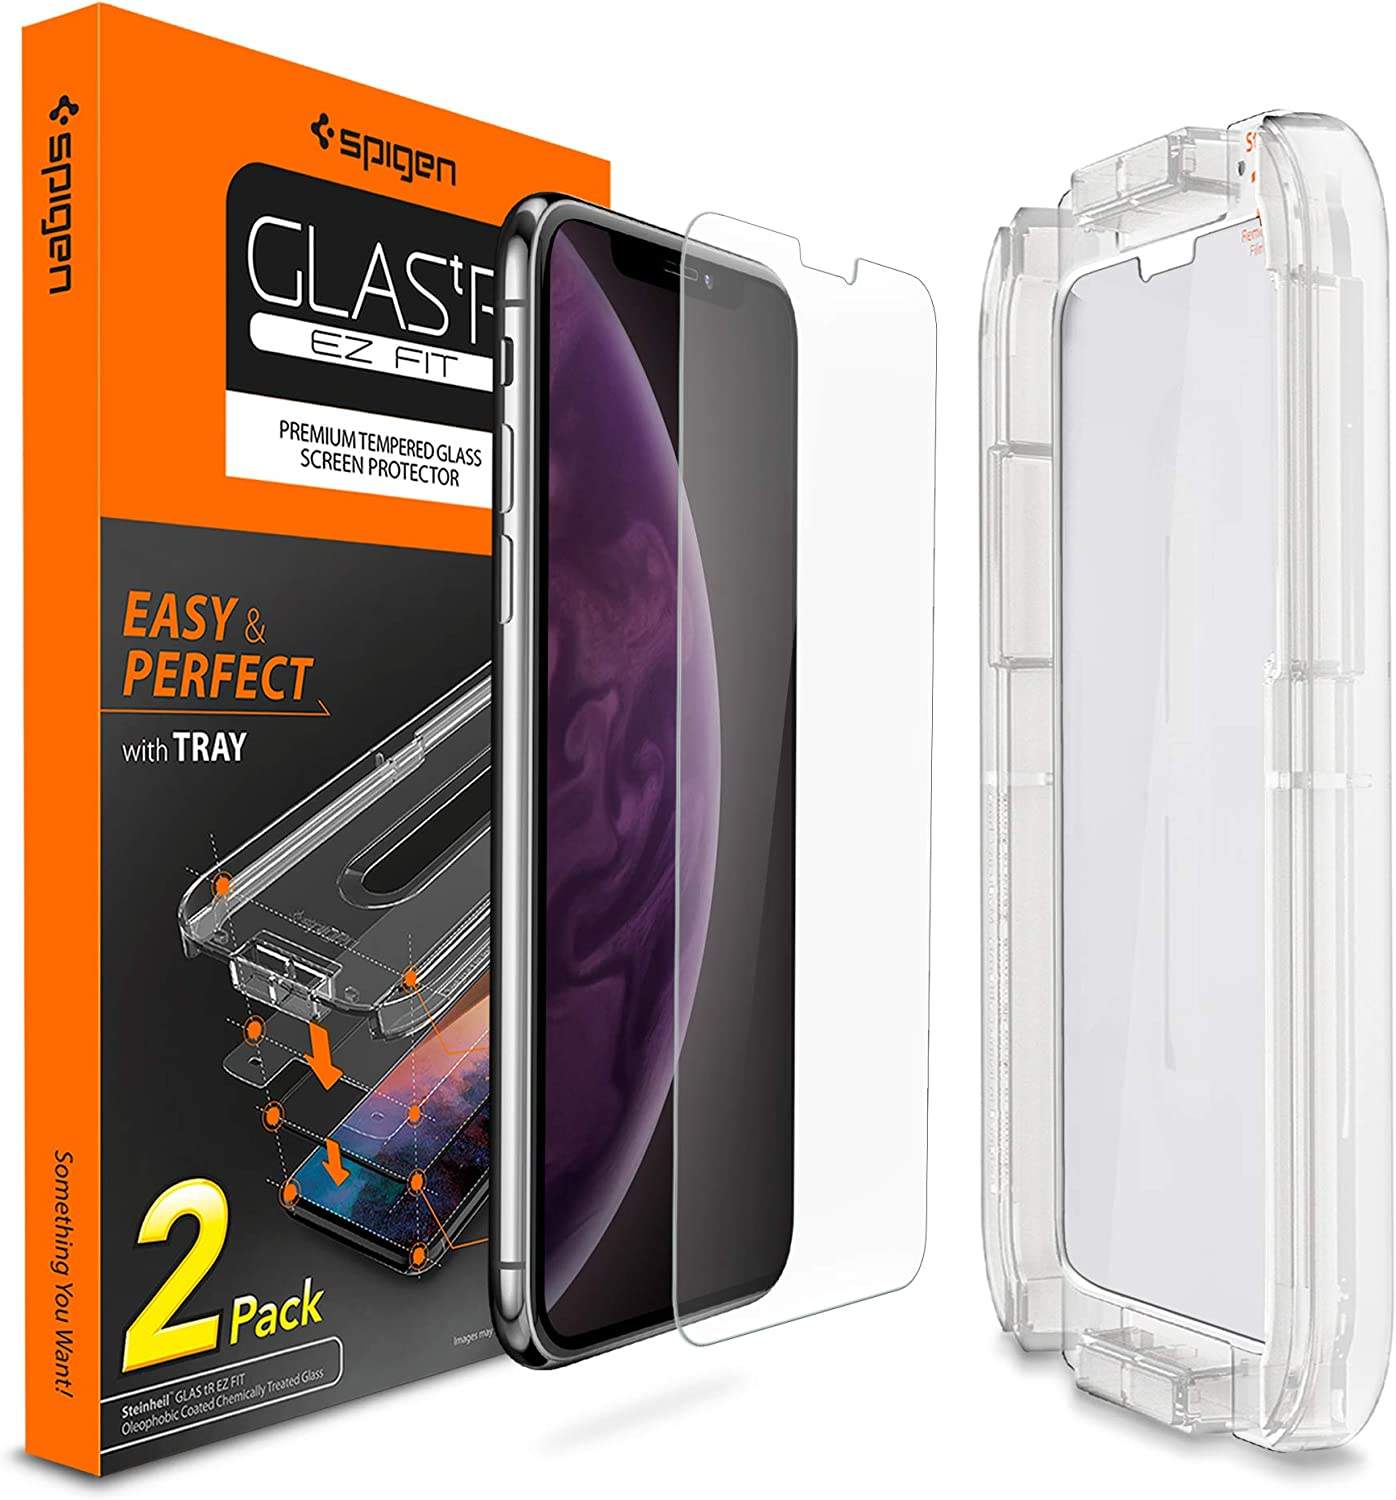 Spigen Tempered Glass Screen Protector [Installation Kit] designed for iPhone Xs Max (2 Pack) - Sensor Protection